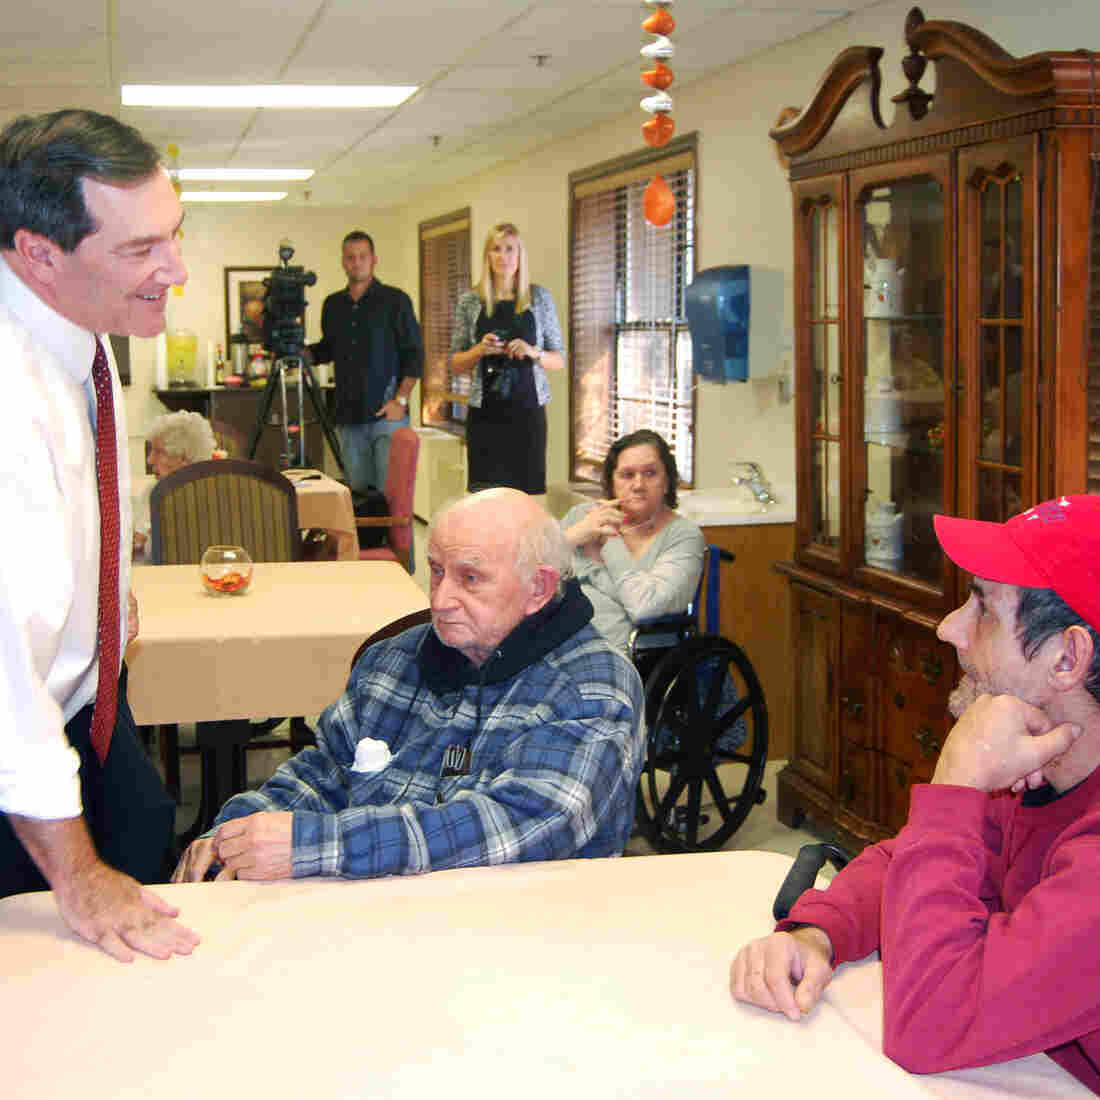 U.S. Rep. Joe Donnelly of Indiana talked with residents of Columbia Healthcare Center, a nursing home in Evansville, Ind., on Thursday.